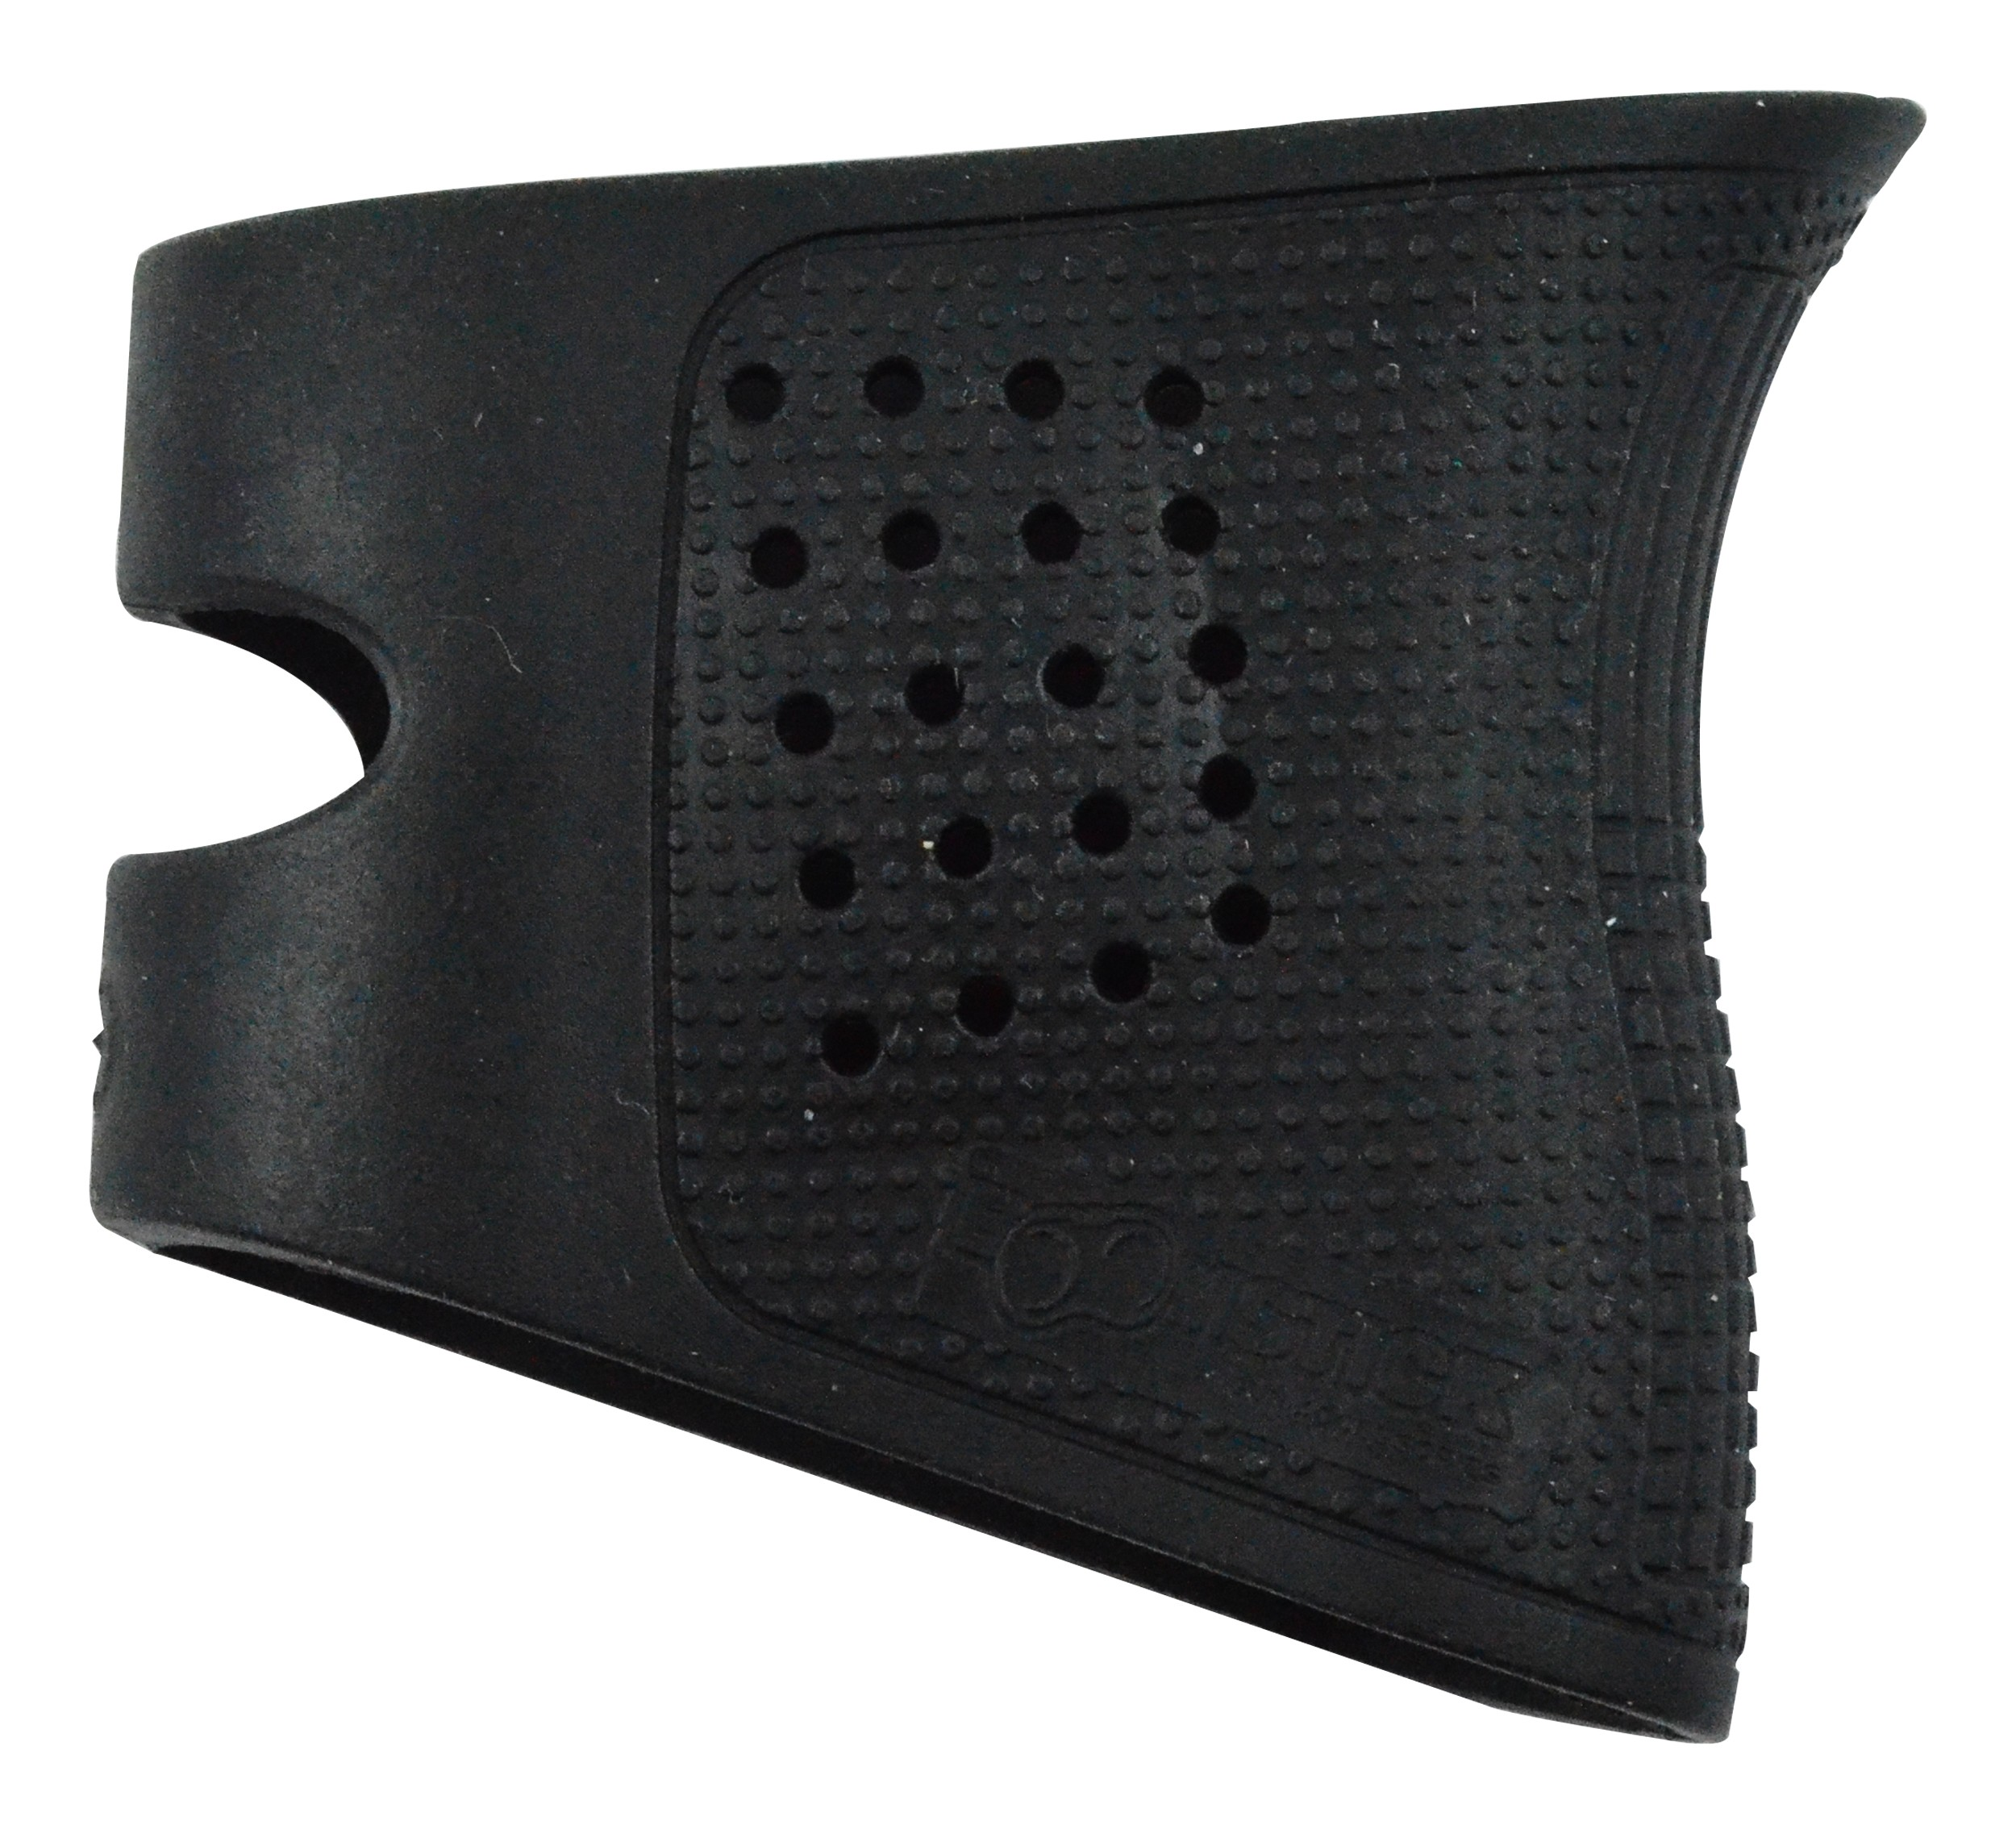 Grip Glove Glock 26, 27, 28, 29, 30, 33, 36, 39